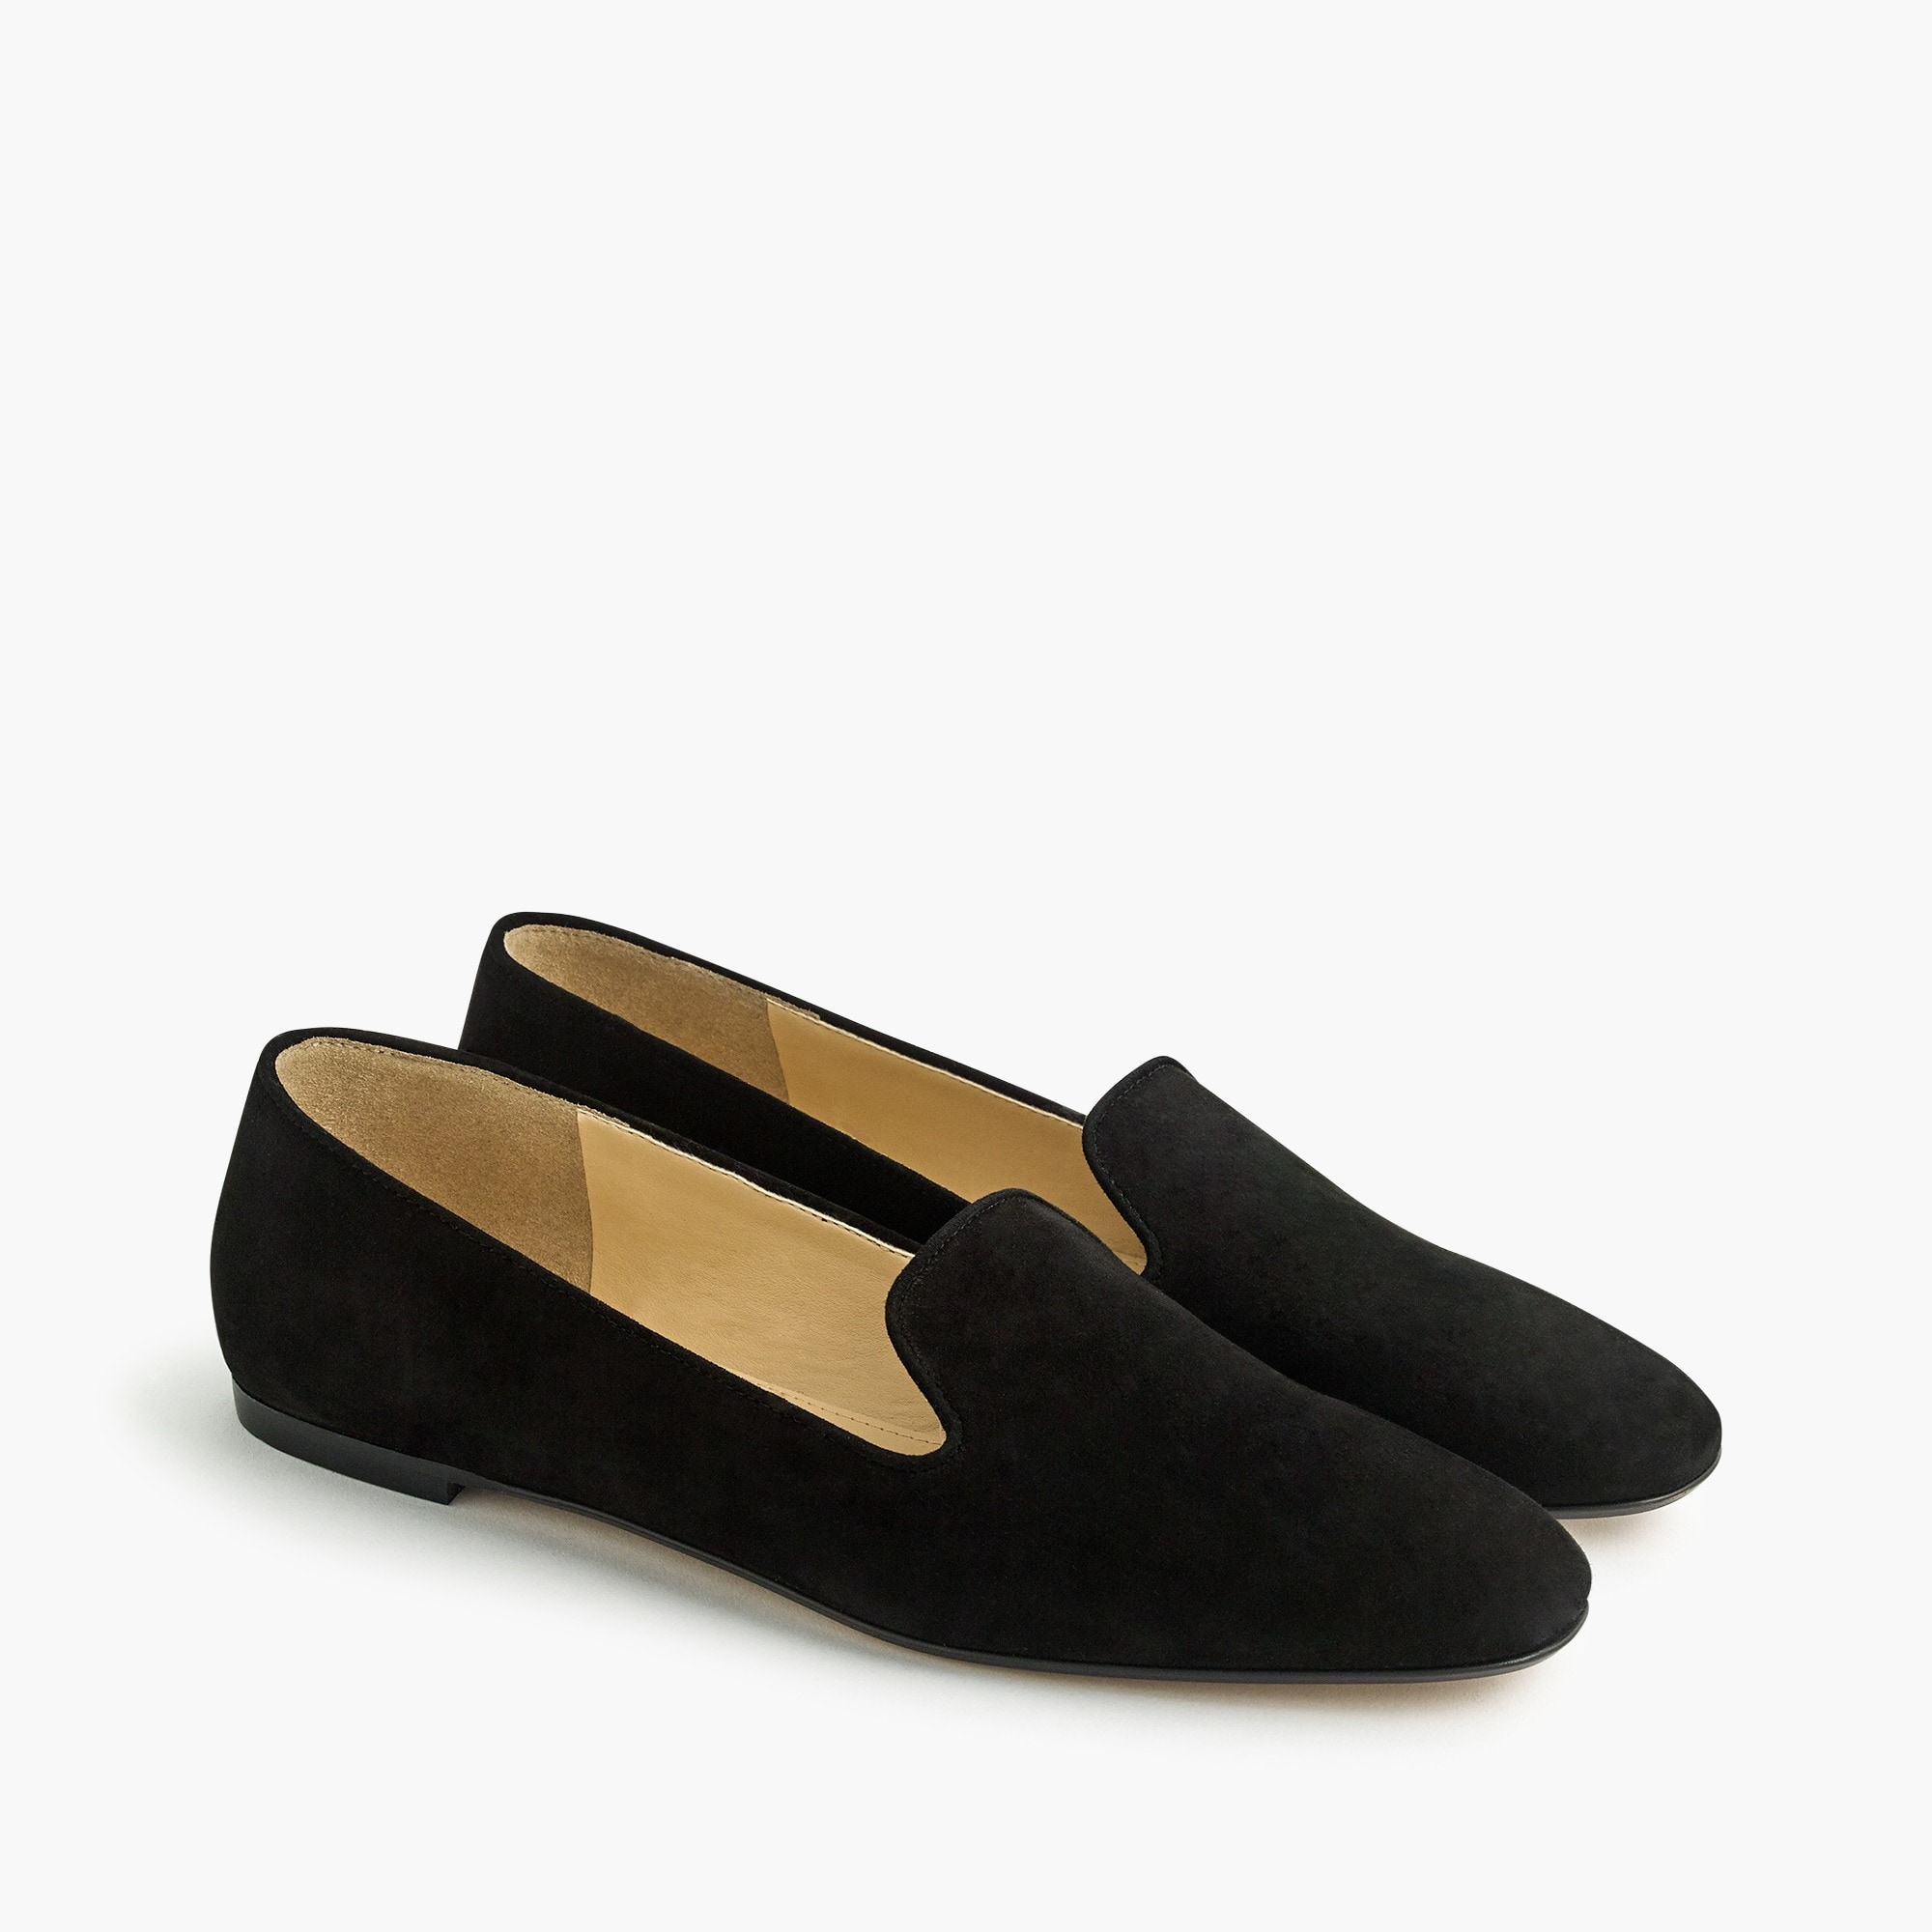 Suede smoking slippers women shoes c